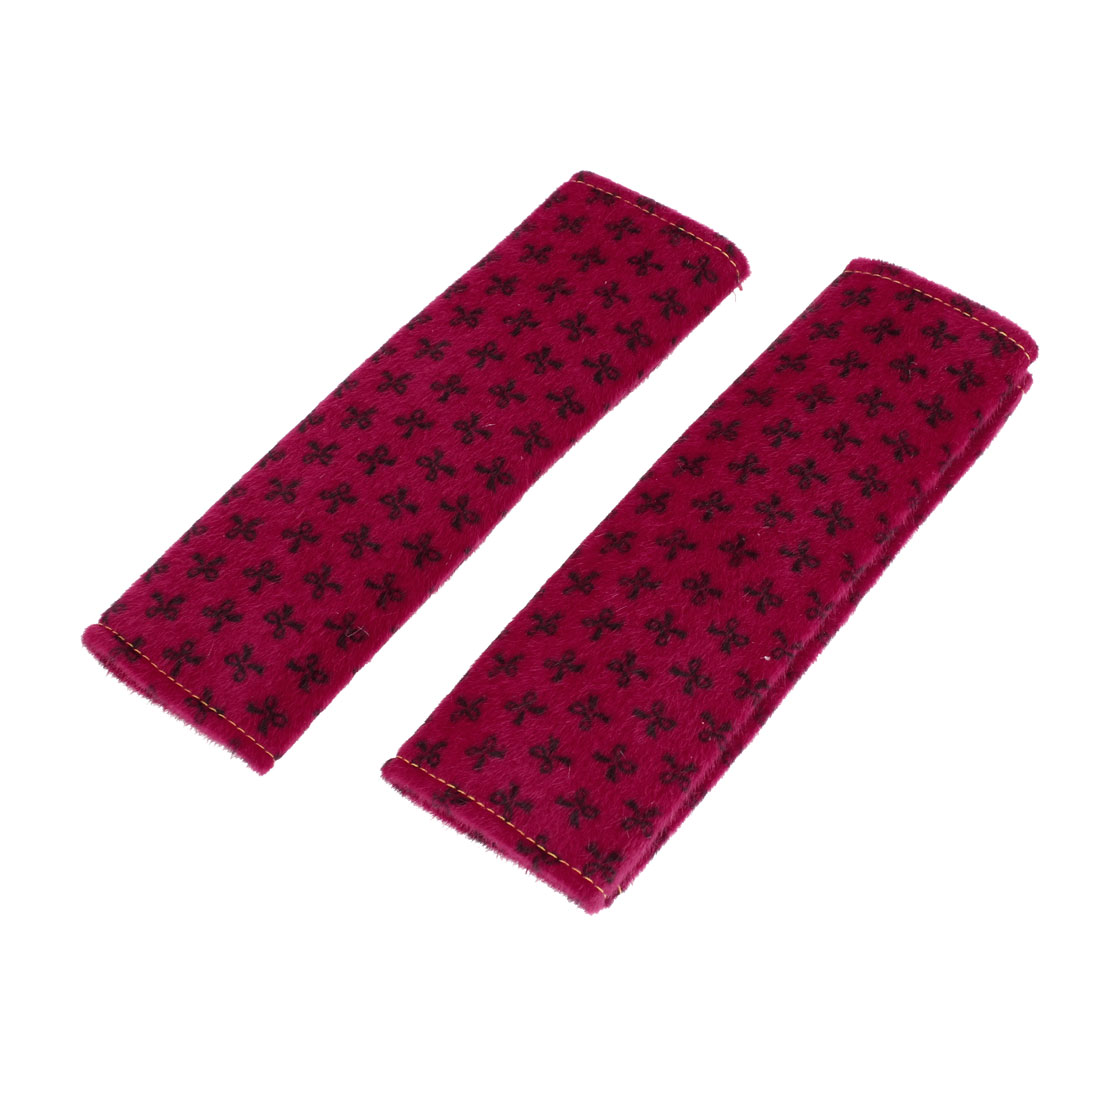 Black Bowknot Print Fleece Vehicle Seatbelt Cover Shoulder Pad Red x 2